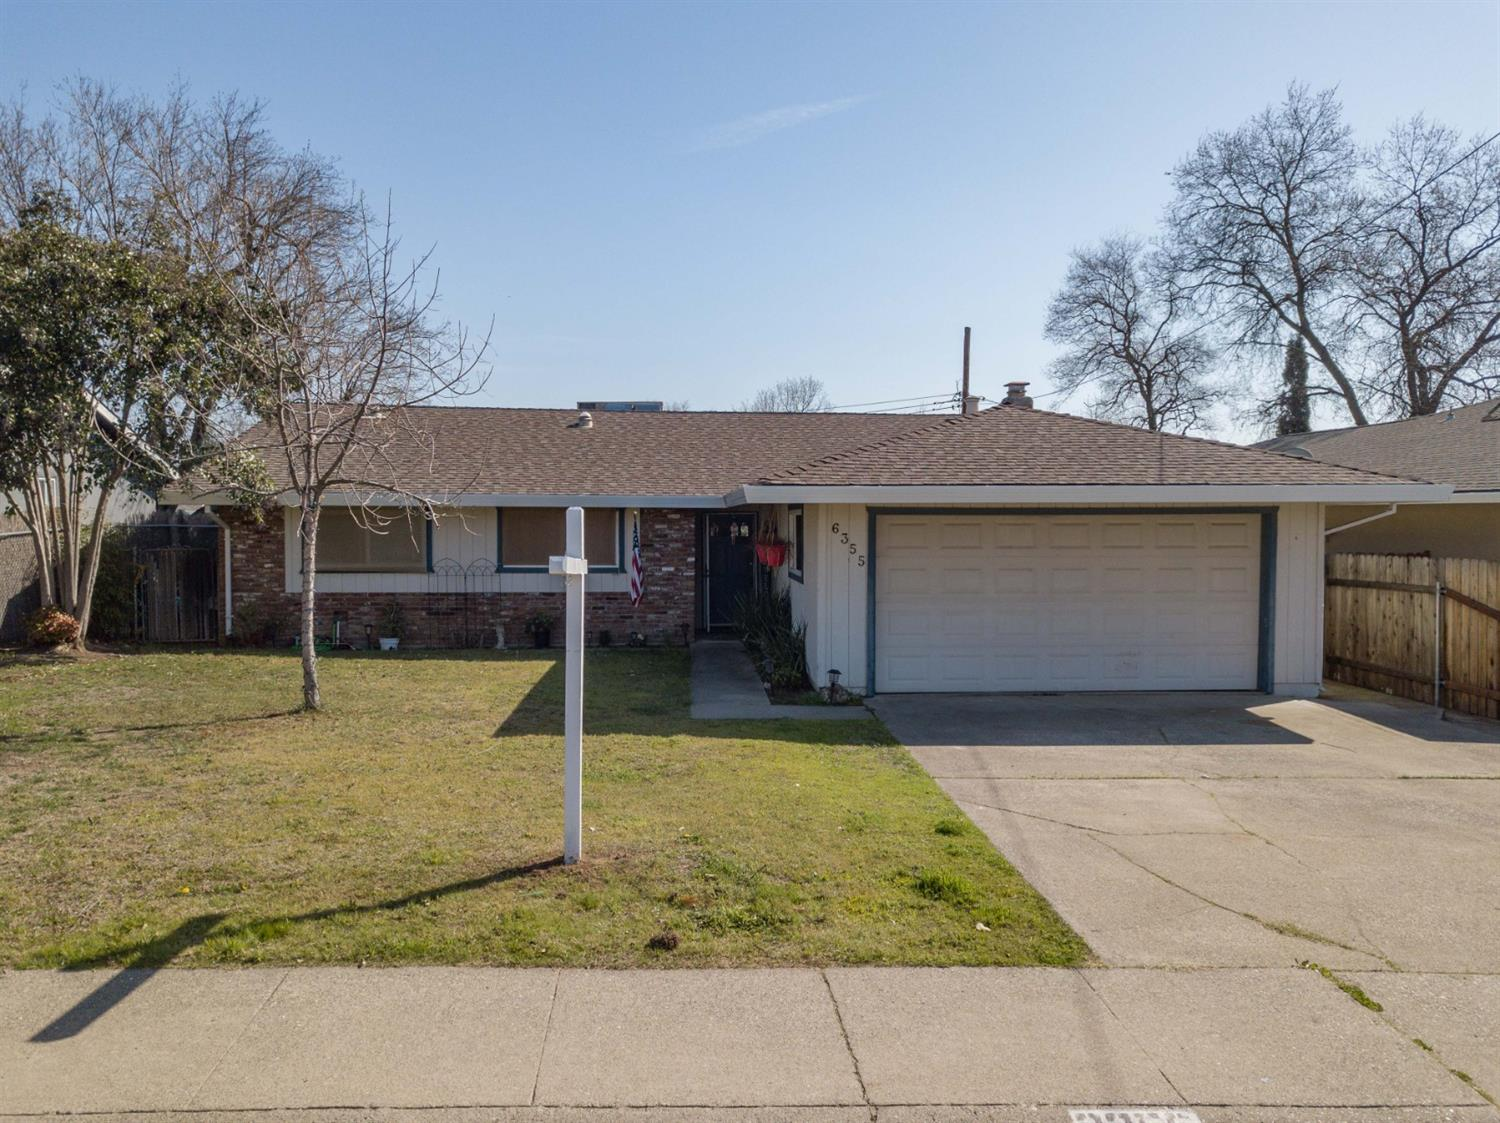 Absolutely Gorgeous 3bed 2bath located in a fantastic neighborhood. Kitchen Remodel with custom granite counters, soft close drawers and a walk in pantry. Remodeled bathroom with jetted tub. The home has an expanded master retreat and tons of closet space.